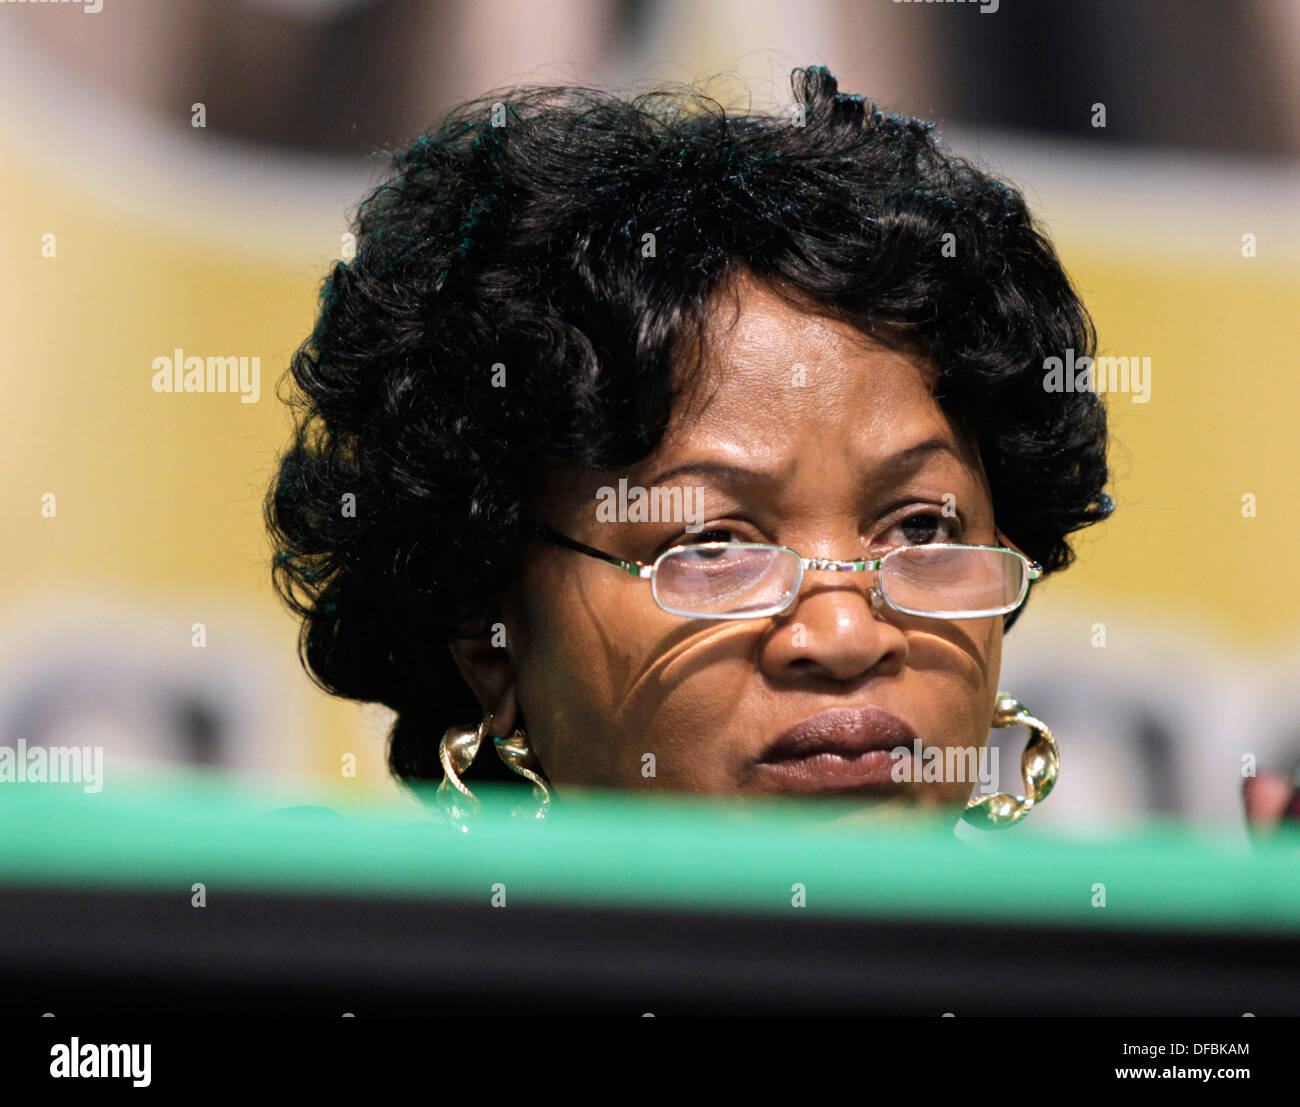 Baleka Mbete at the African National Congress (ANC) National General Council in Durban, 20 September 2010. © Rogan Ward 2010 - Stock Image